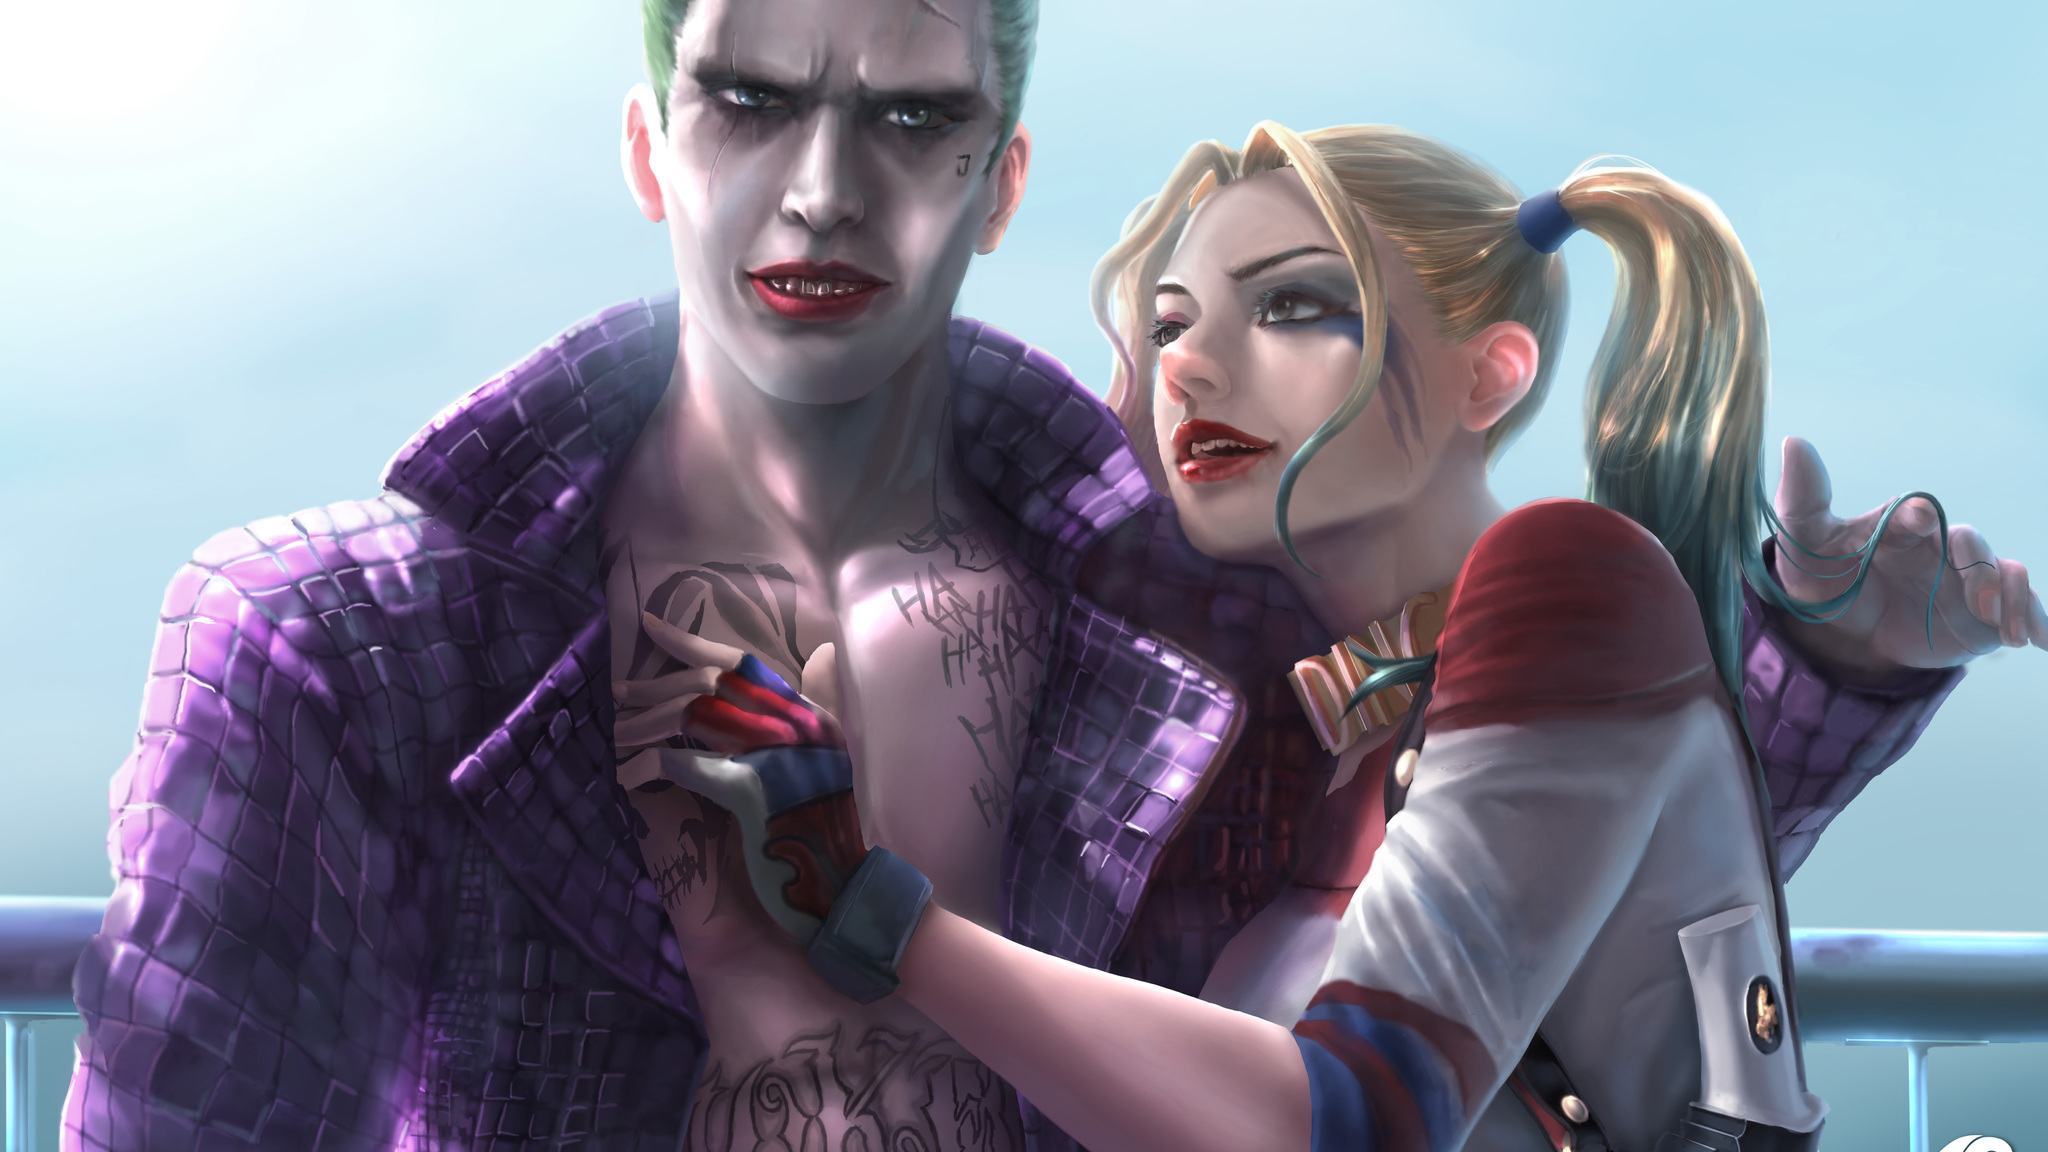 joker-and-harley-quinn-8k-artwork-e2.jpg